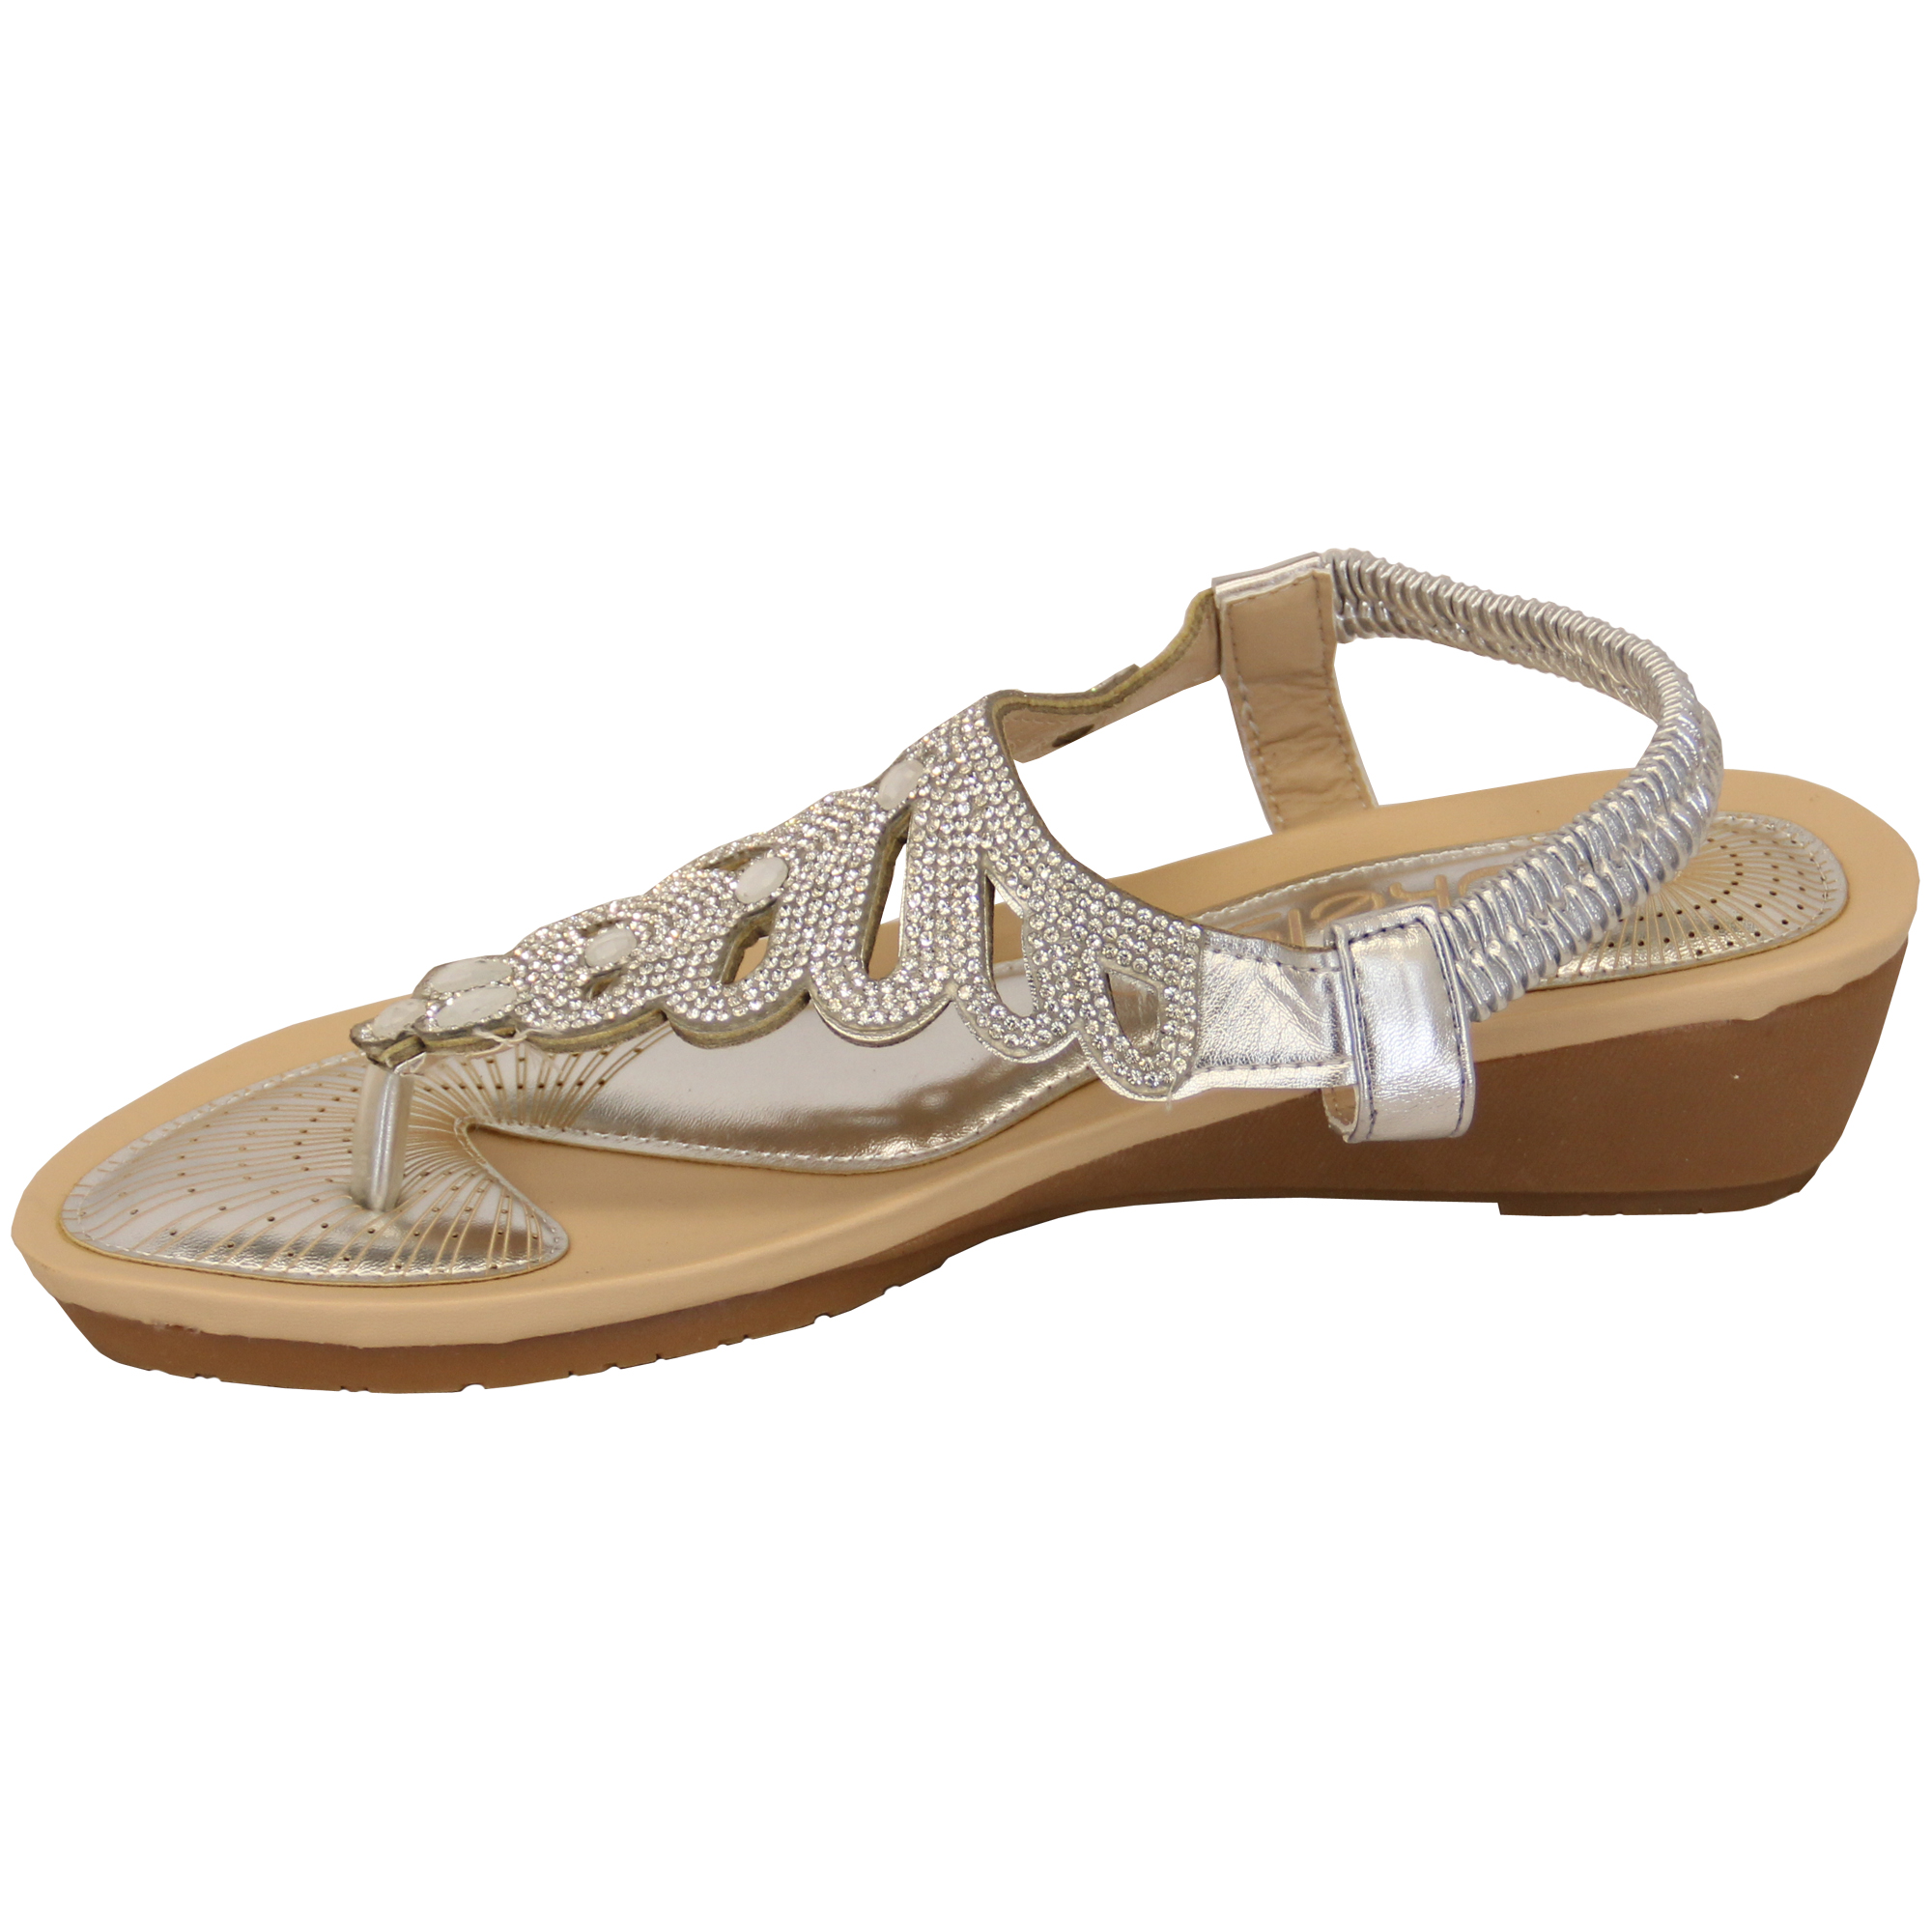 Ladies-Sandals-Kelsi-Womens-Diamante-Slip-On-Toe-Post-Shoes-Casual-Fashion-New thumbnail 29